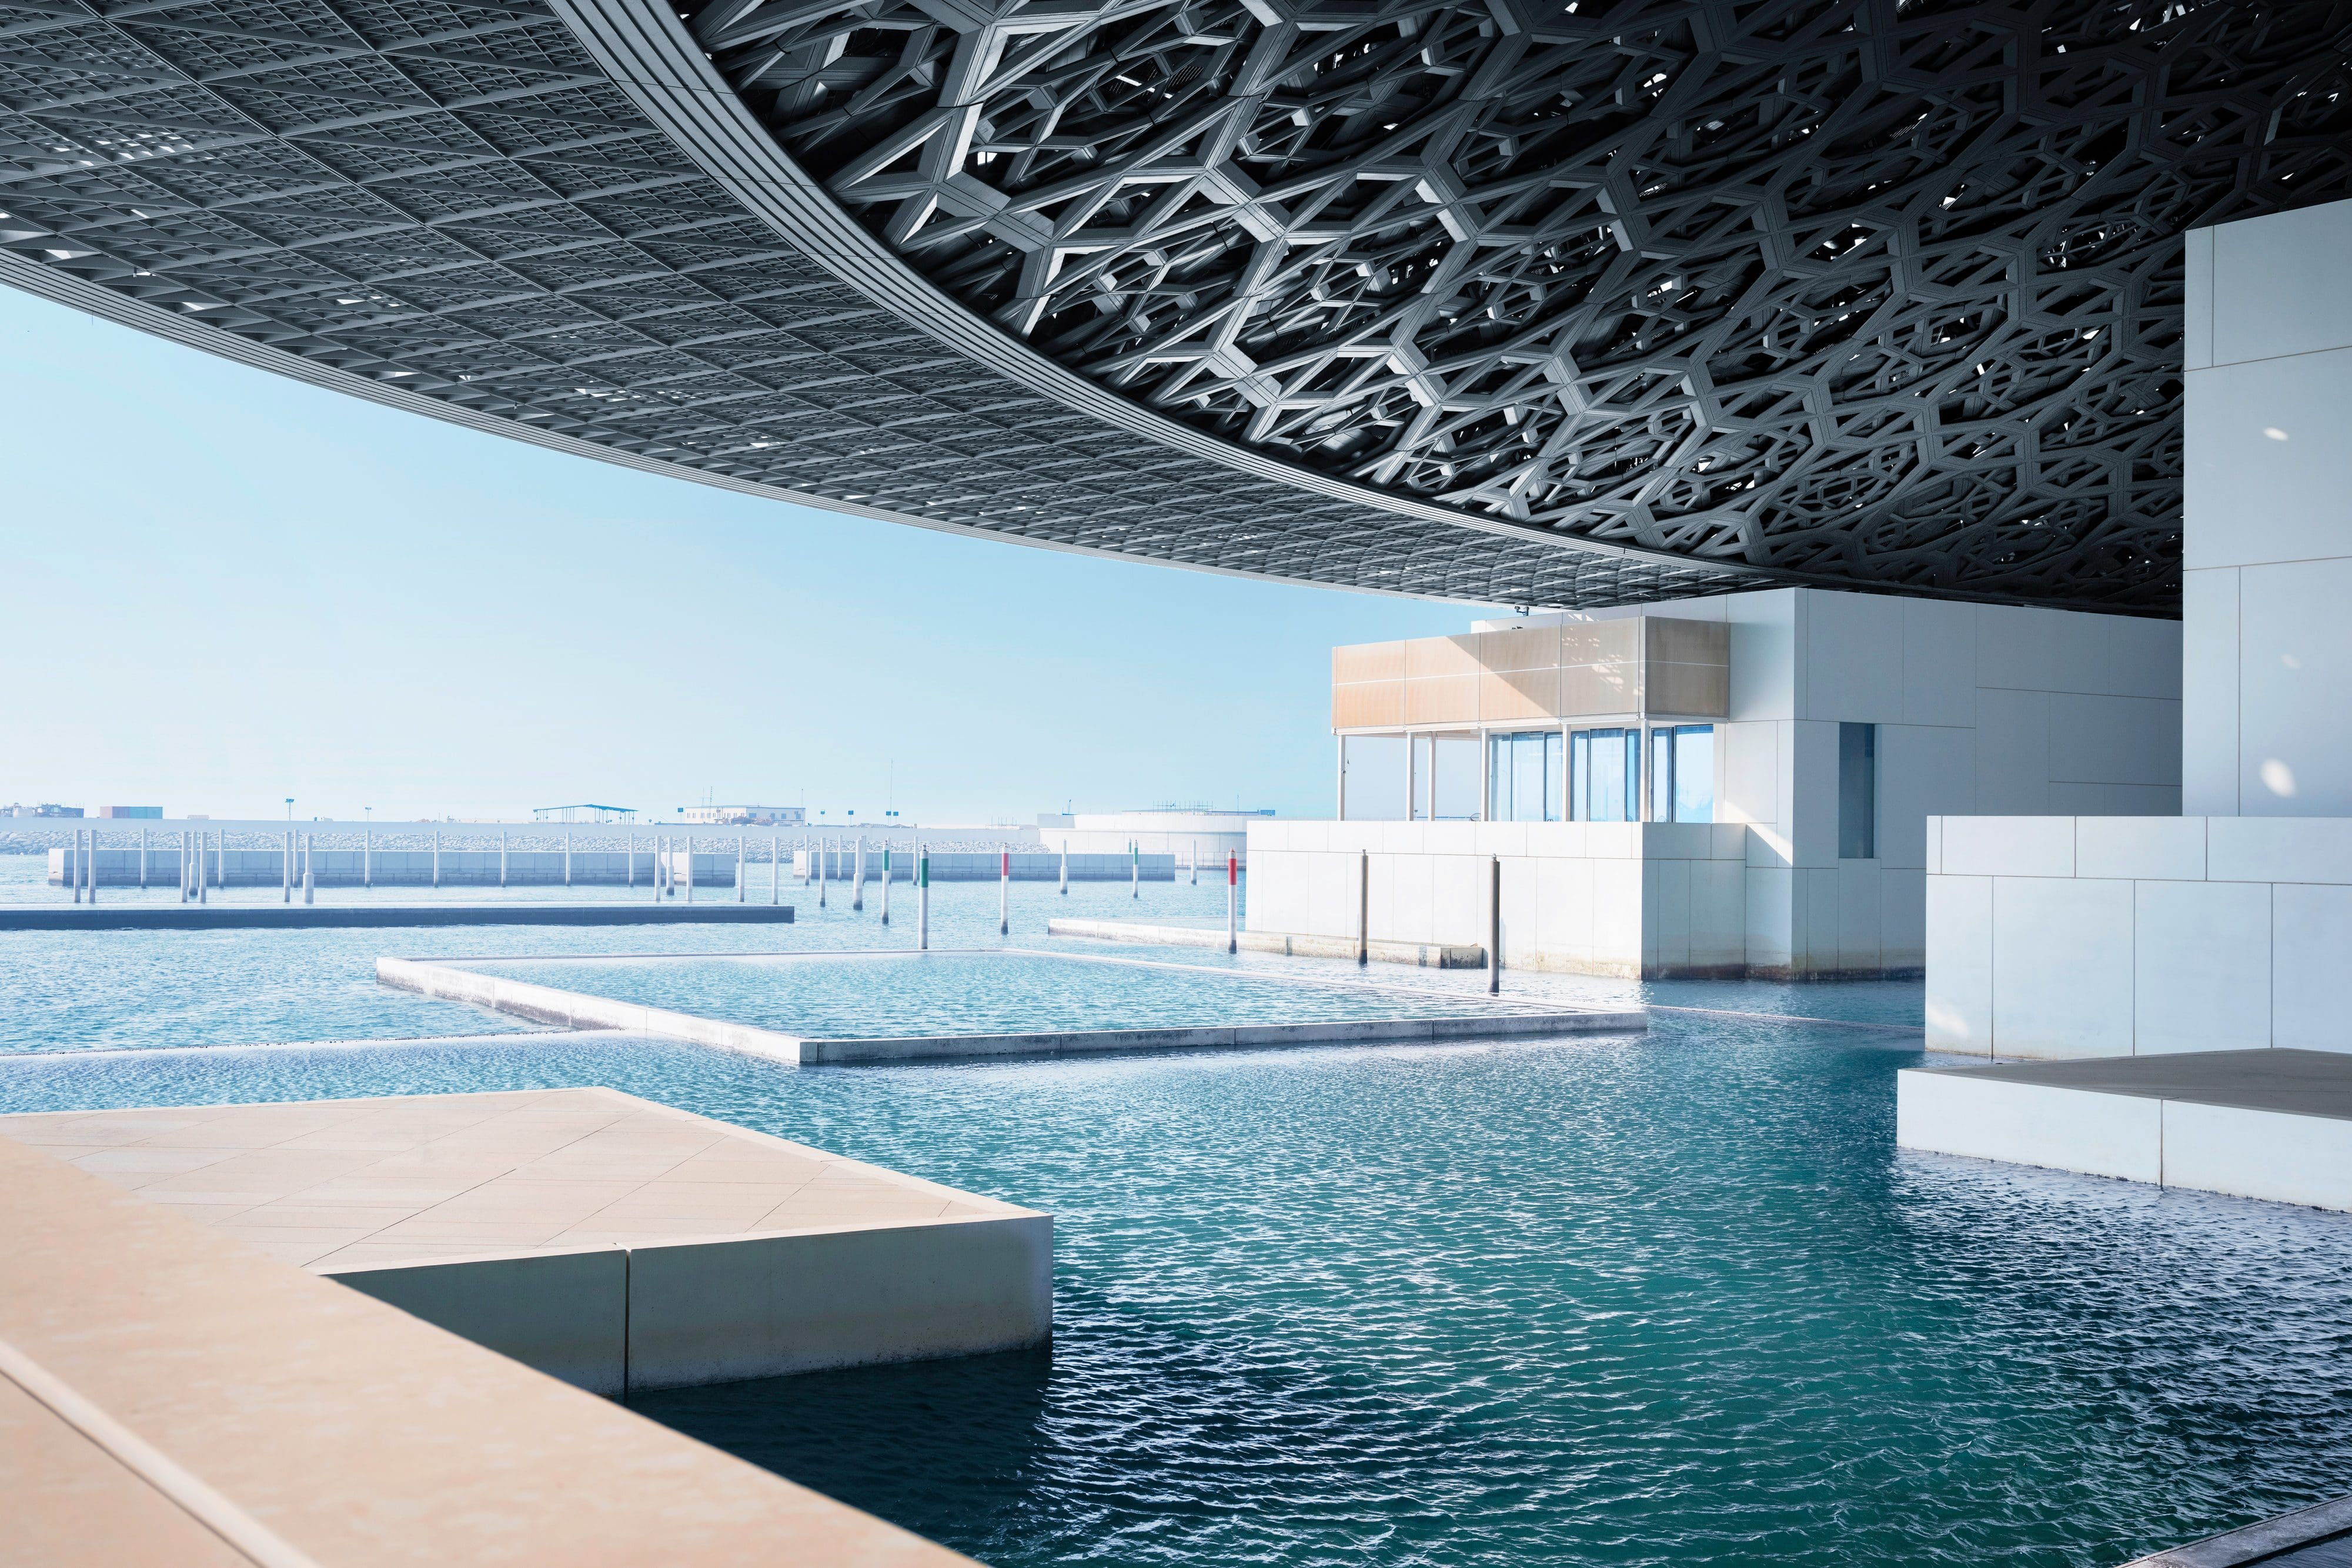 The external pools and intricate roof at Abu Dhabi's Louvre Museum